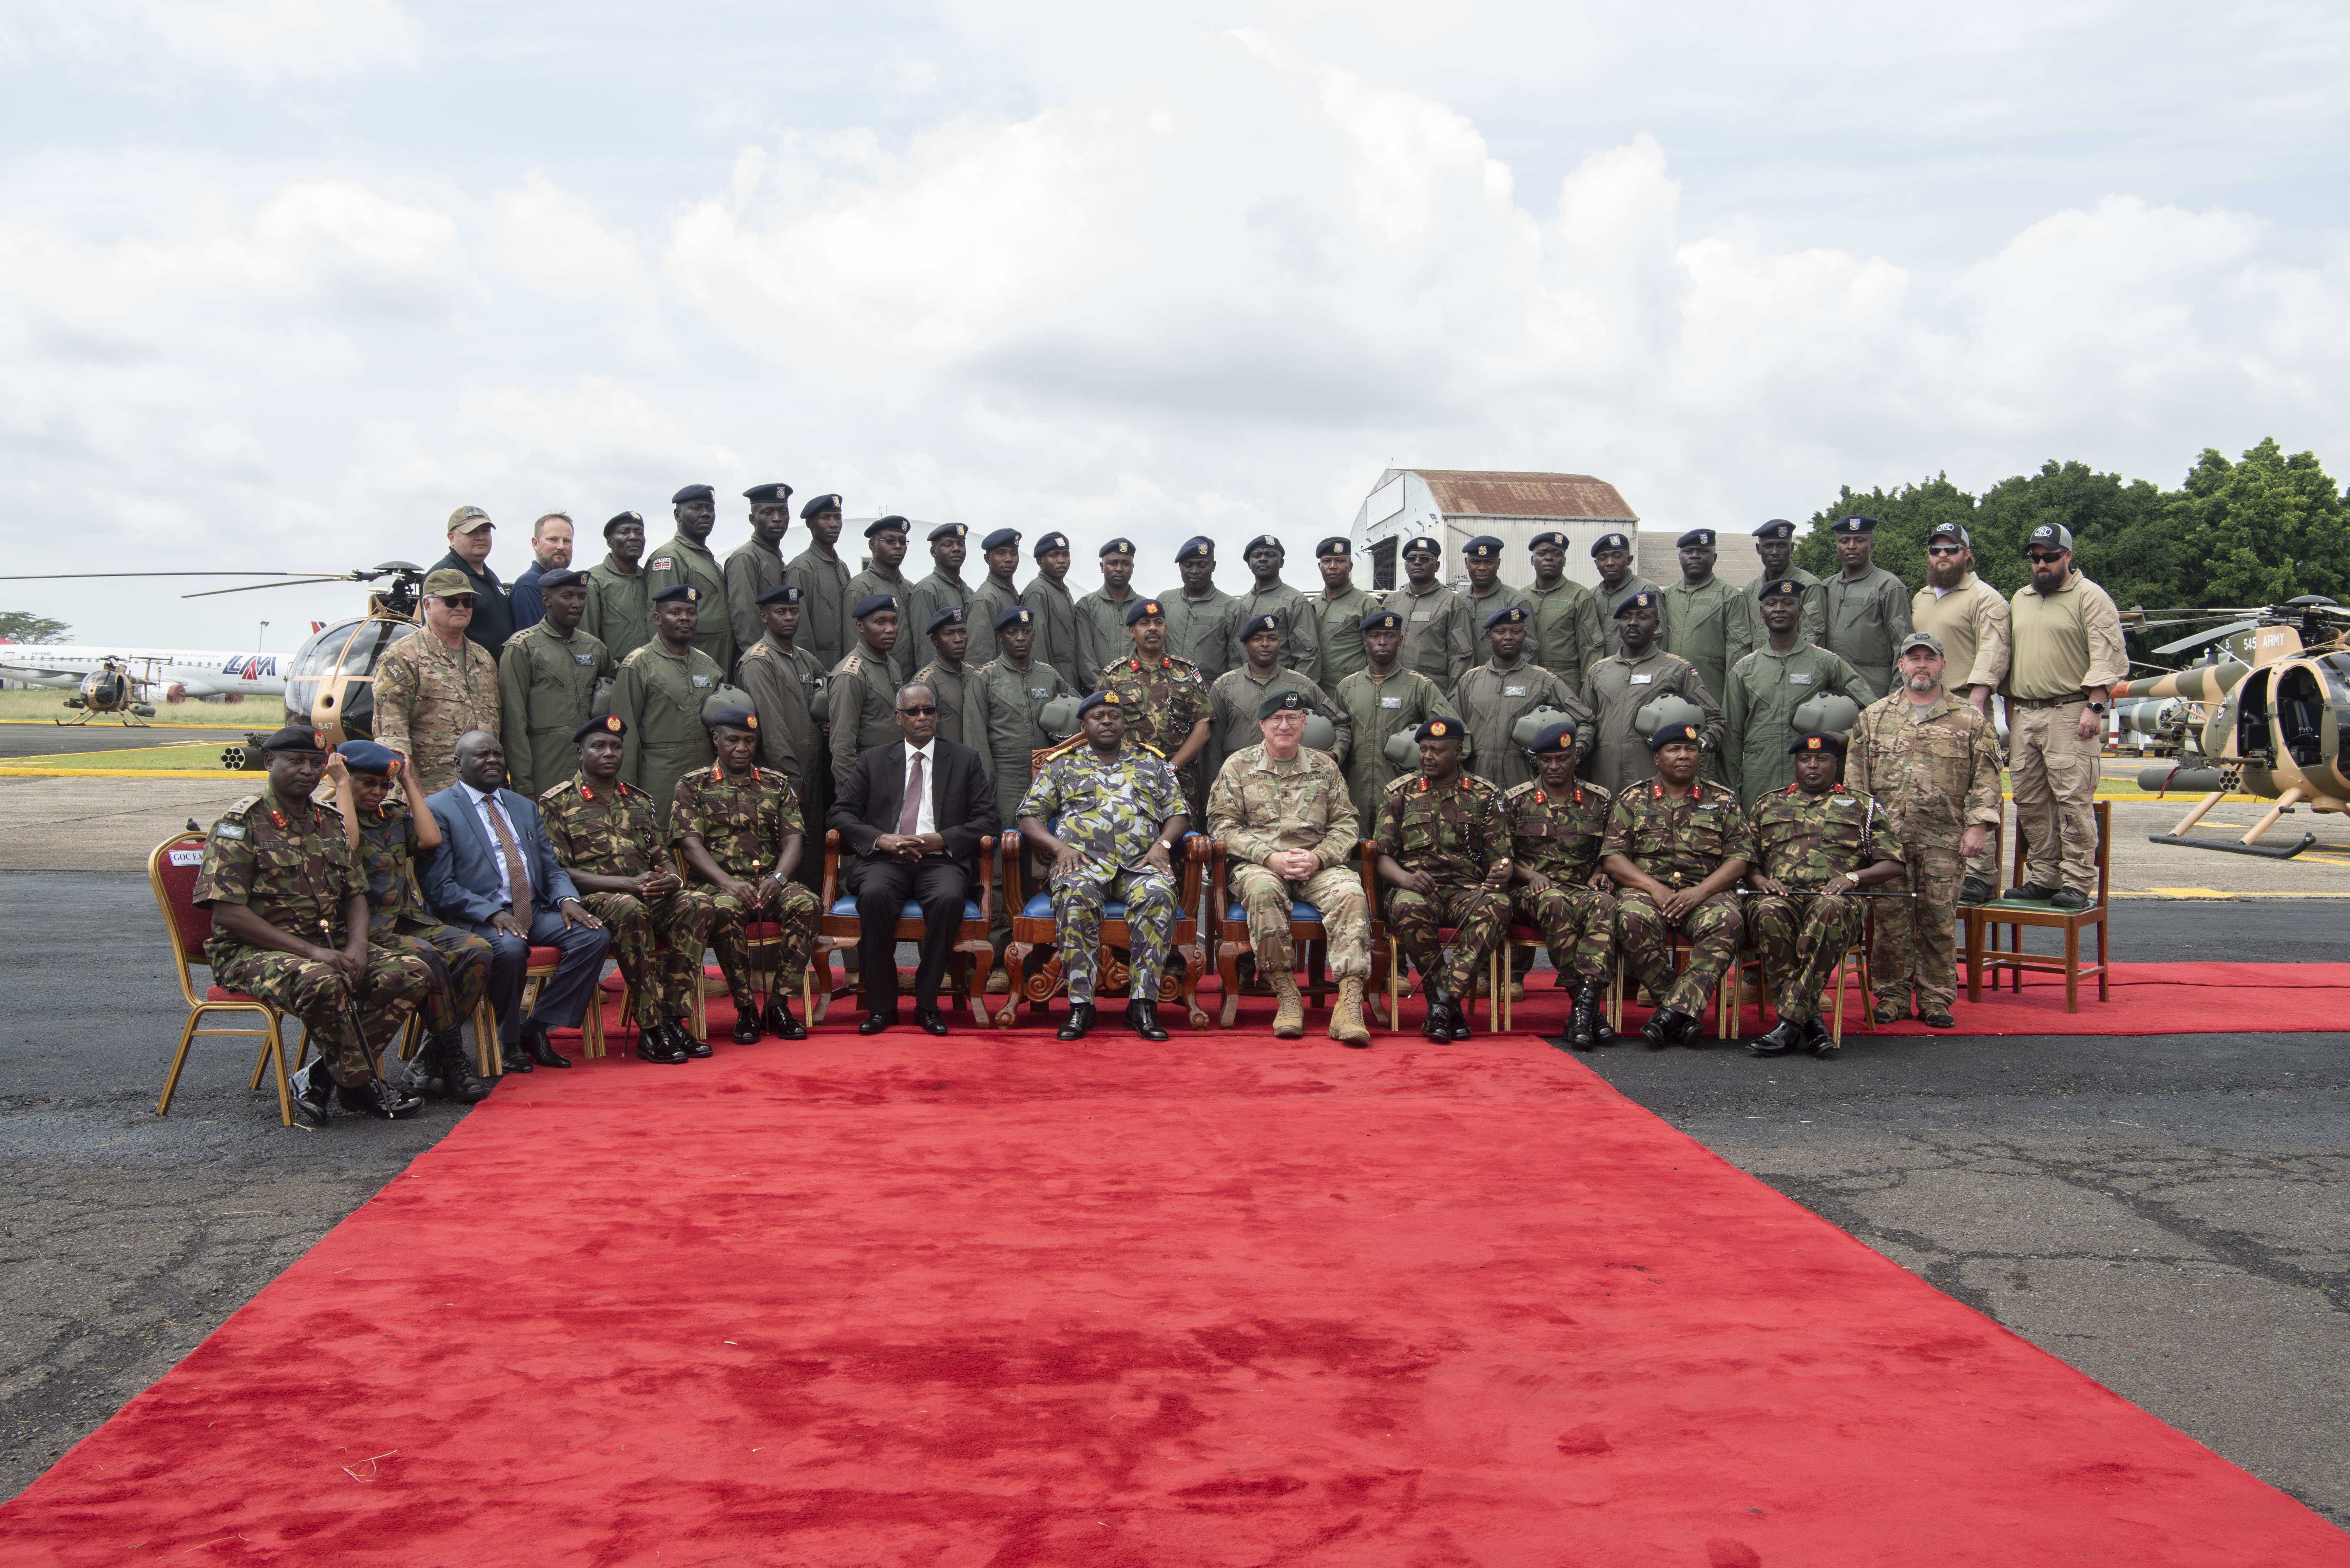 U.S. Army Maj. Gen. Michael D. Turello, commanding general of Combined Joint Task Force-Horn of Africa, center right, and Gen. Samson Mwathethe, chief of Kenyan Defense Forces (KDF), center left, take a group photo with members from the KDF during a Helicopter Handover Ceremony at Embakasi Barracks, Kenya, Jan. 23, 2020. During the ceremony, six MD-530F Cayuse Warrior helicopters were delivered to the KDF in a symbolic handover. Six more MD-530F helicopters will be delivered to the KDF in the near future. (U.S. Air Force photo by Tech. Sgt. Ashley Nicole Taylor)